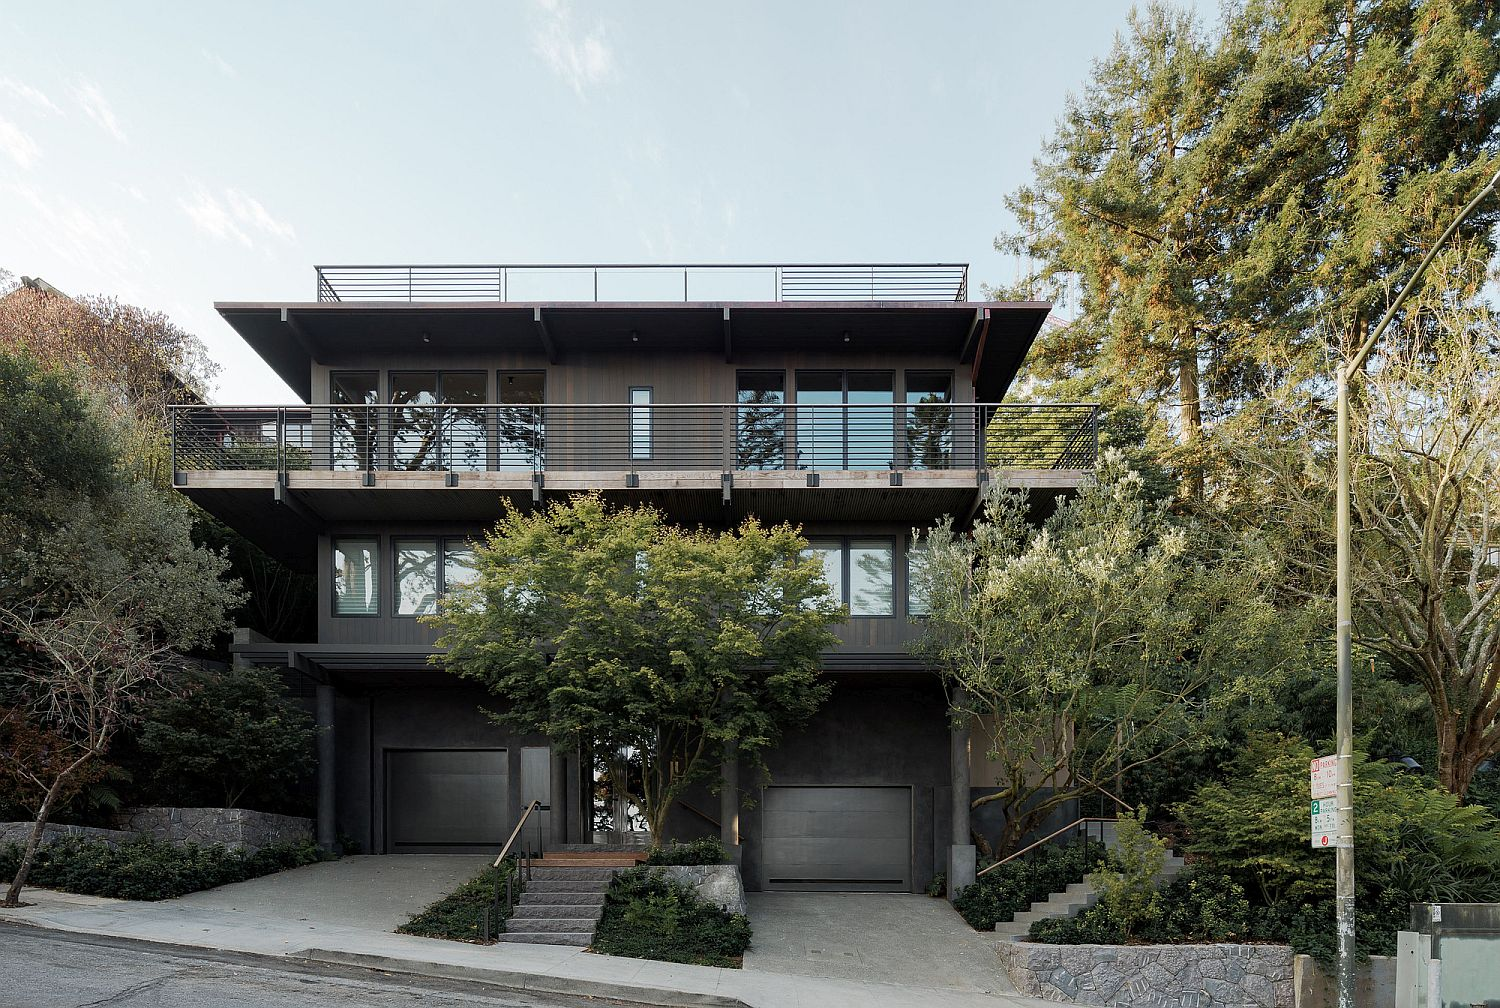 Street facade of the multi-level contemporary house with a view of the Golden Gate bridge